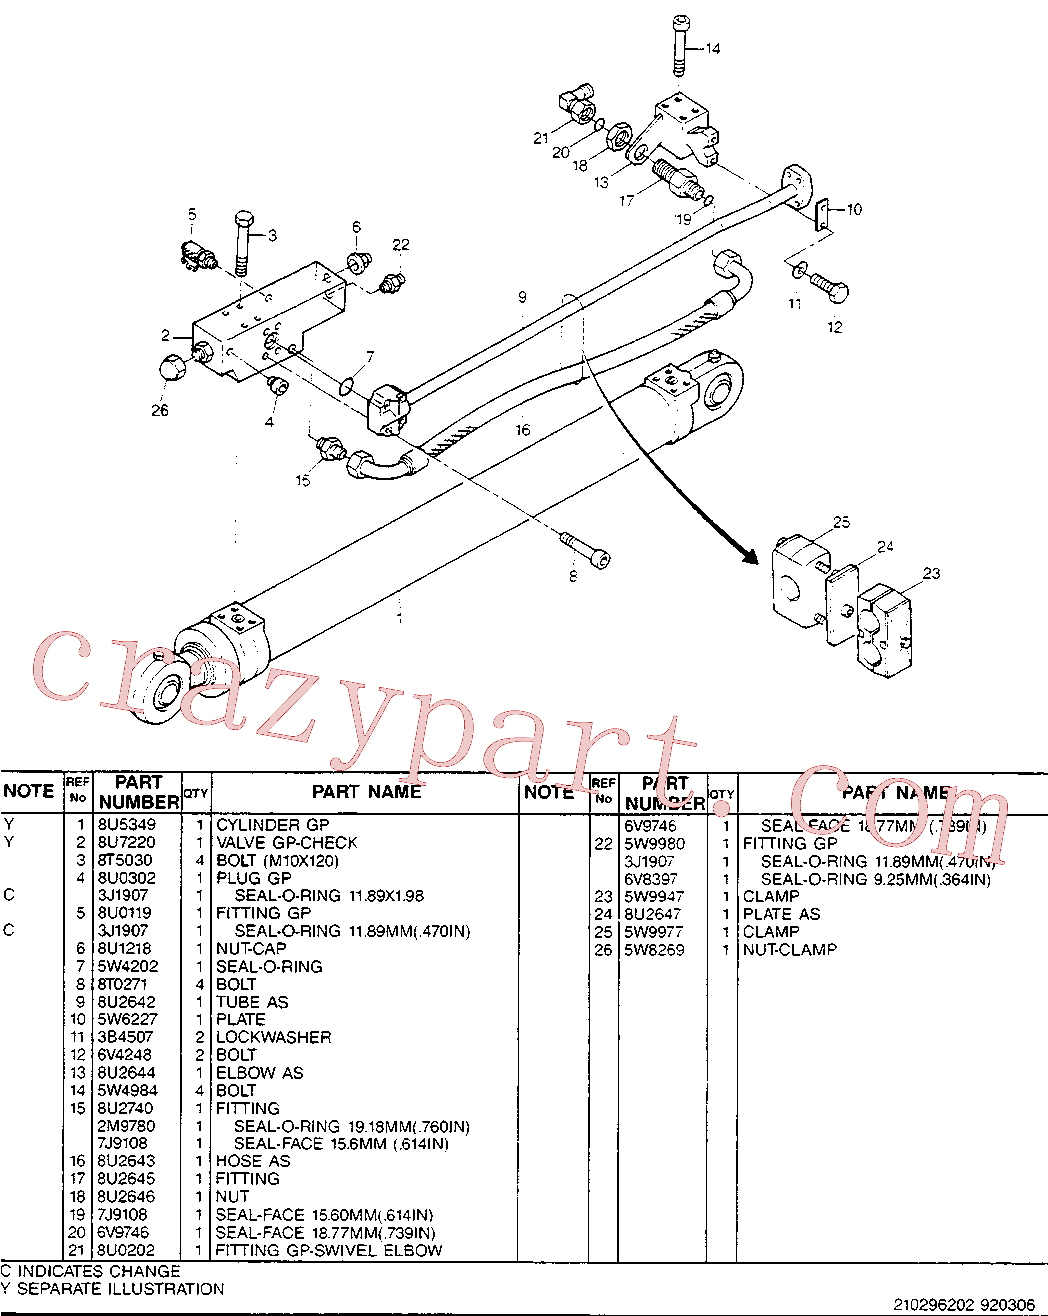 CAT 8U-0302 for 214B FT Excavator(EXC) hydraulic system 8U-2640 Assembly